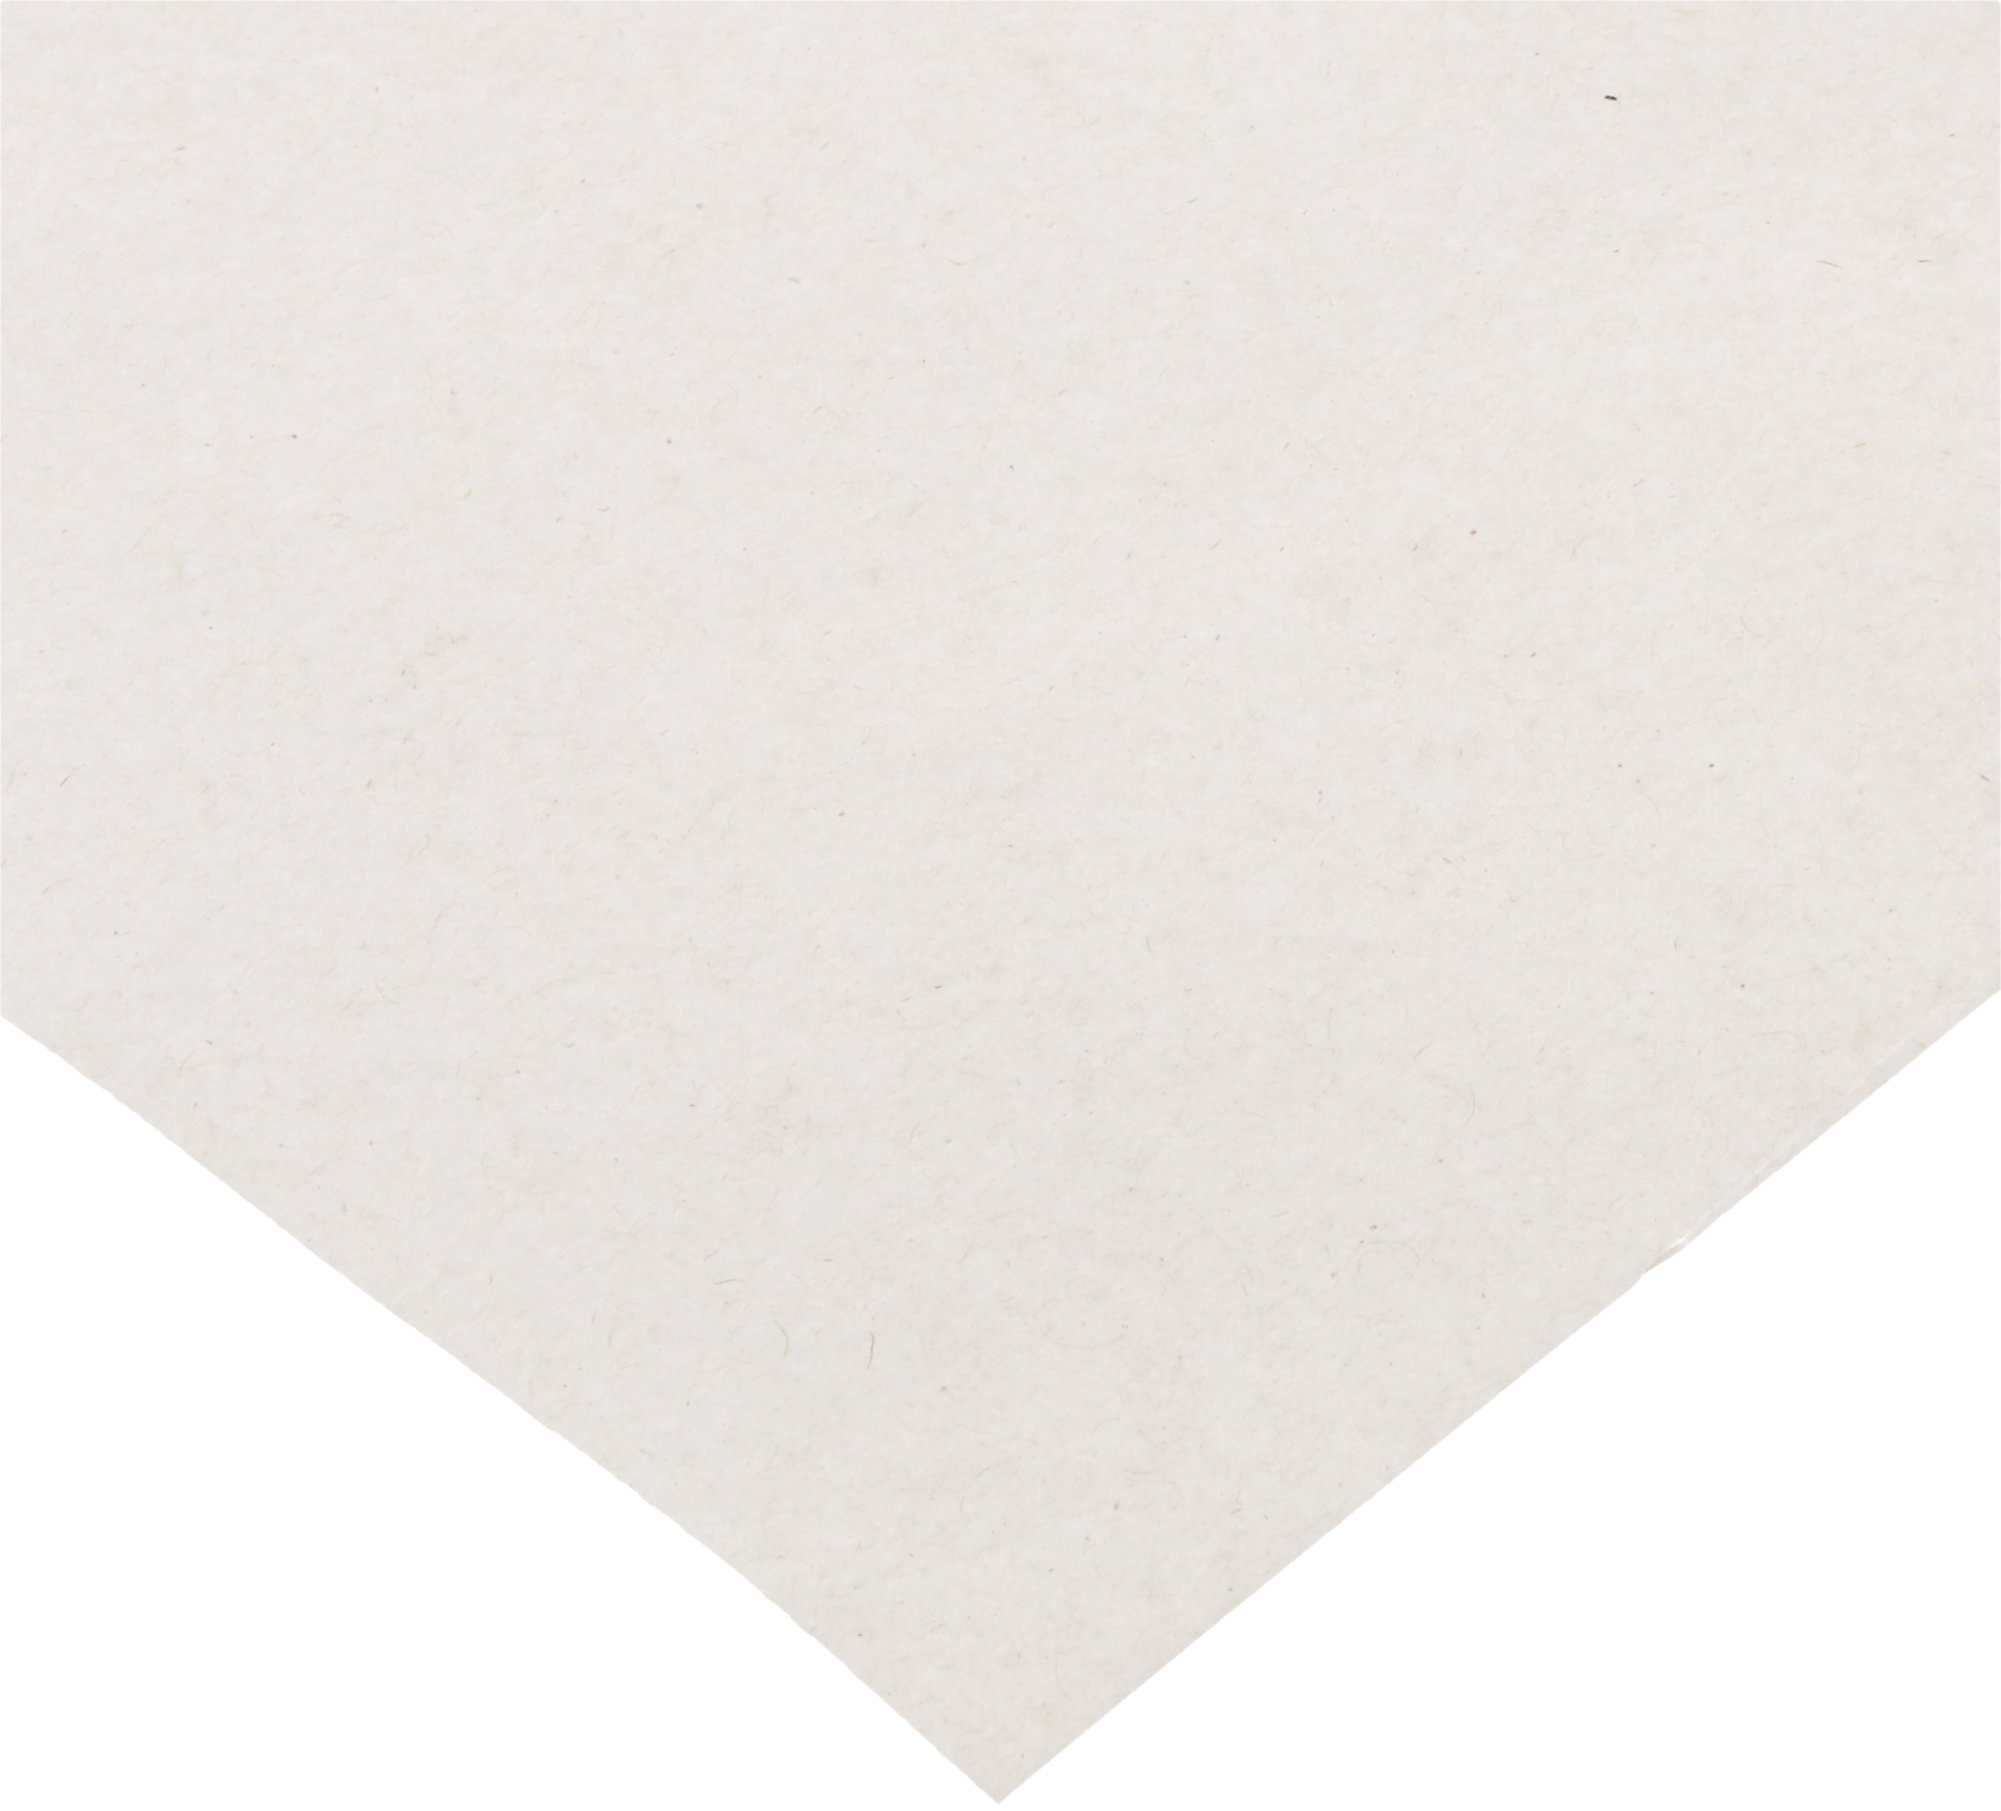 Pratt Multipurpose Newsprint Wrapping Paper Sheet, NPS203025,  30'' Length x 20'' Width, White (Bundle of 600)